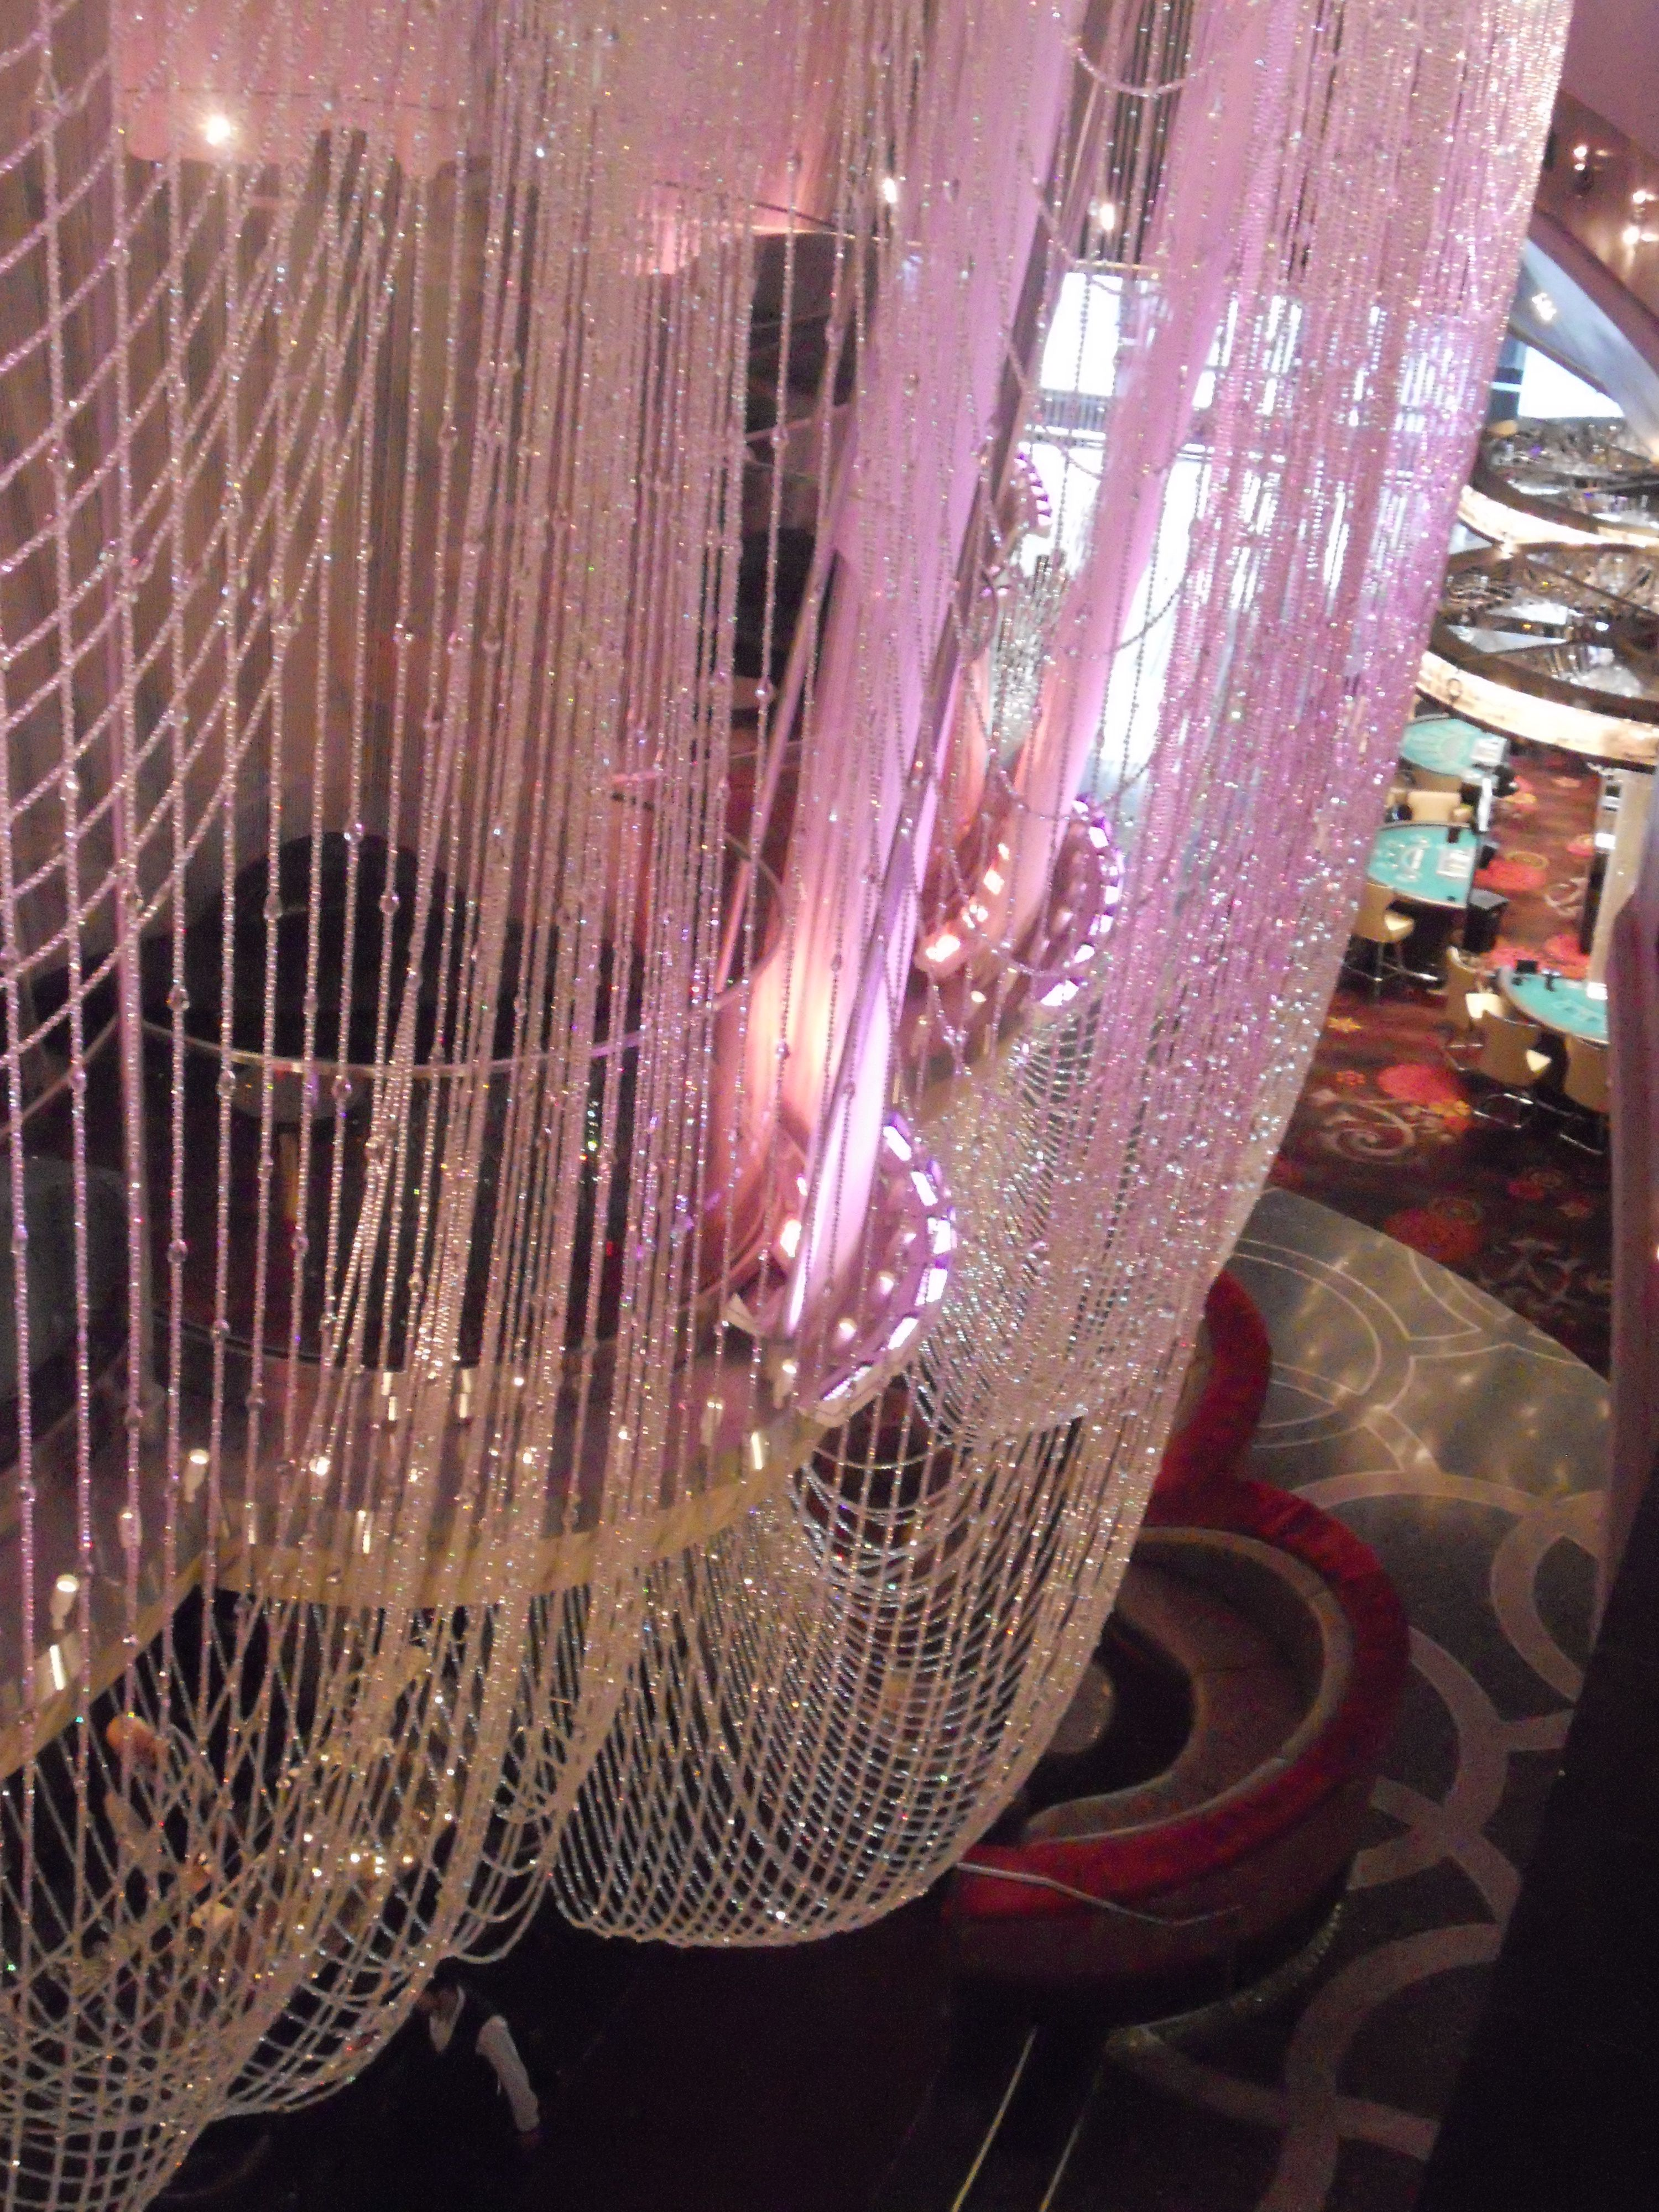 This is the Chandelier Bar at The Cosmopolitan Hotel in Las Vegas